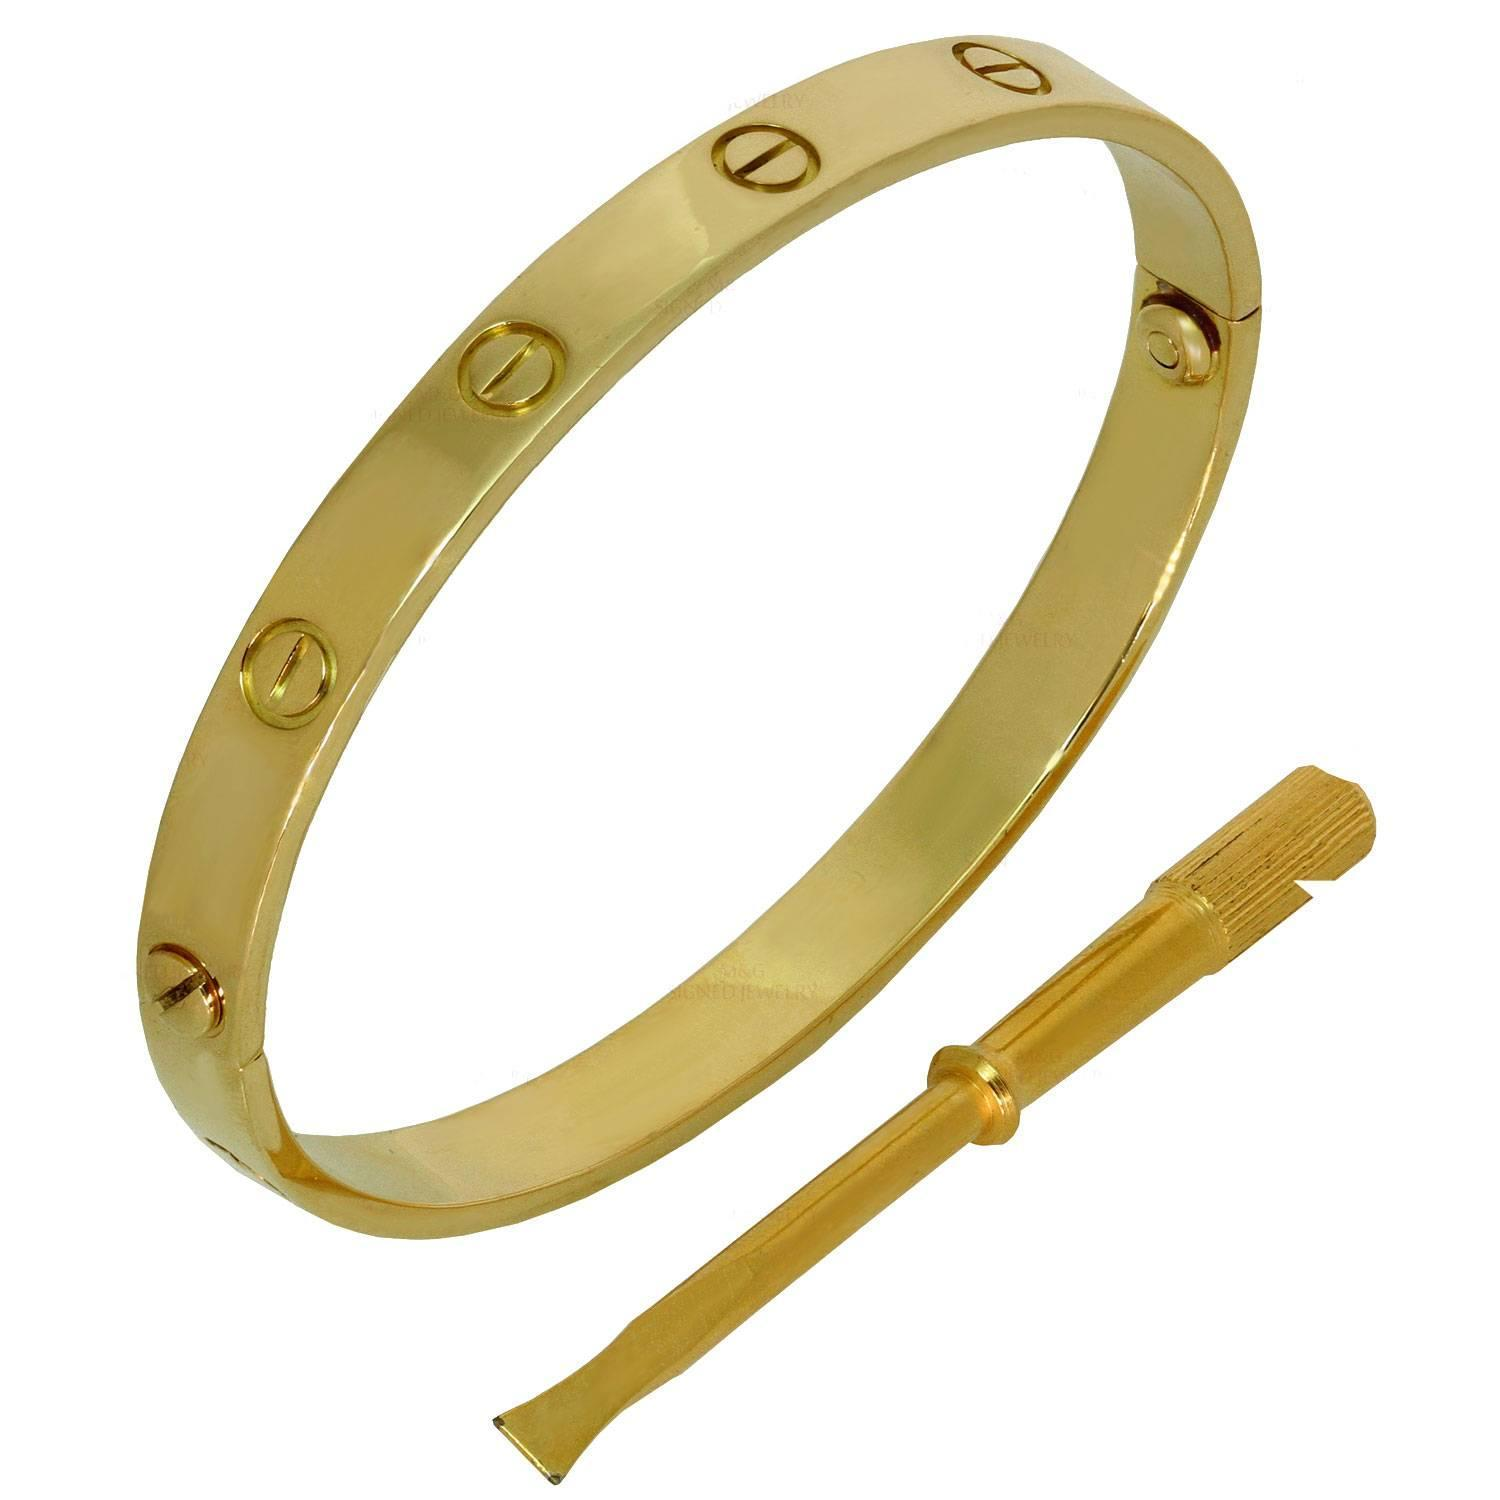 bracelets bangle size gold cartier z j love at jewelry yellow id org bangles bracelet